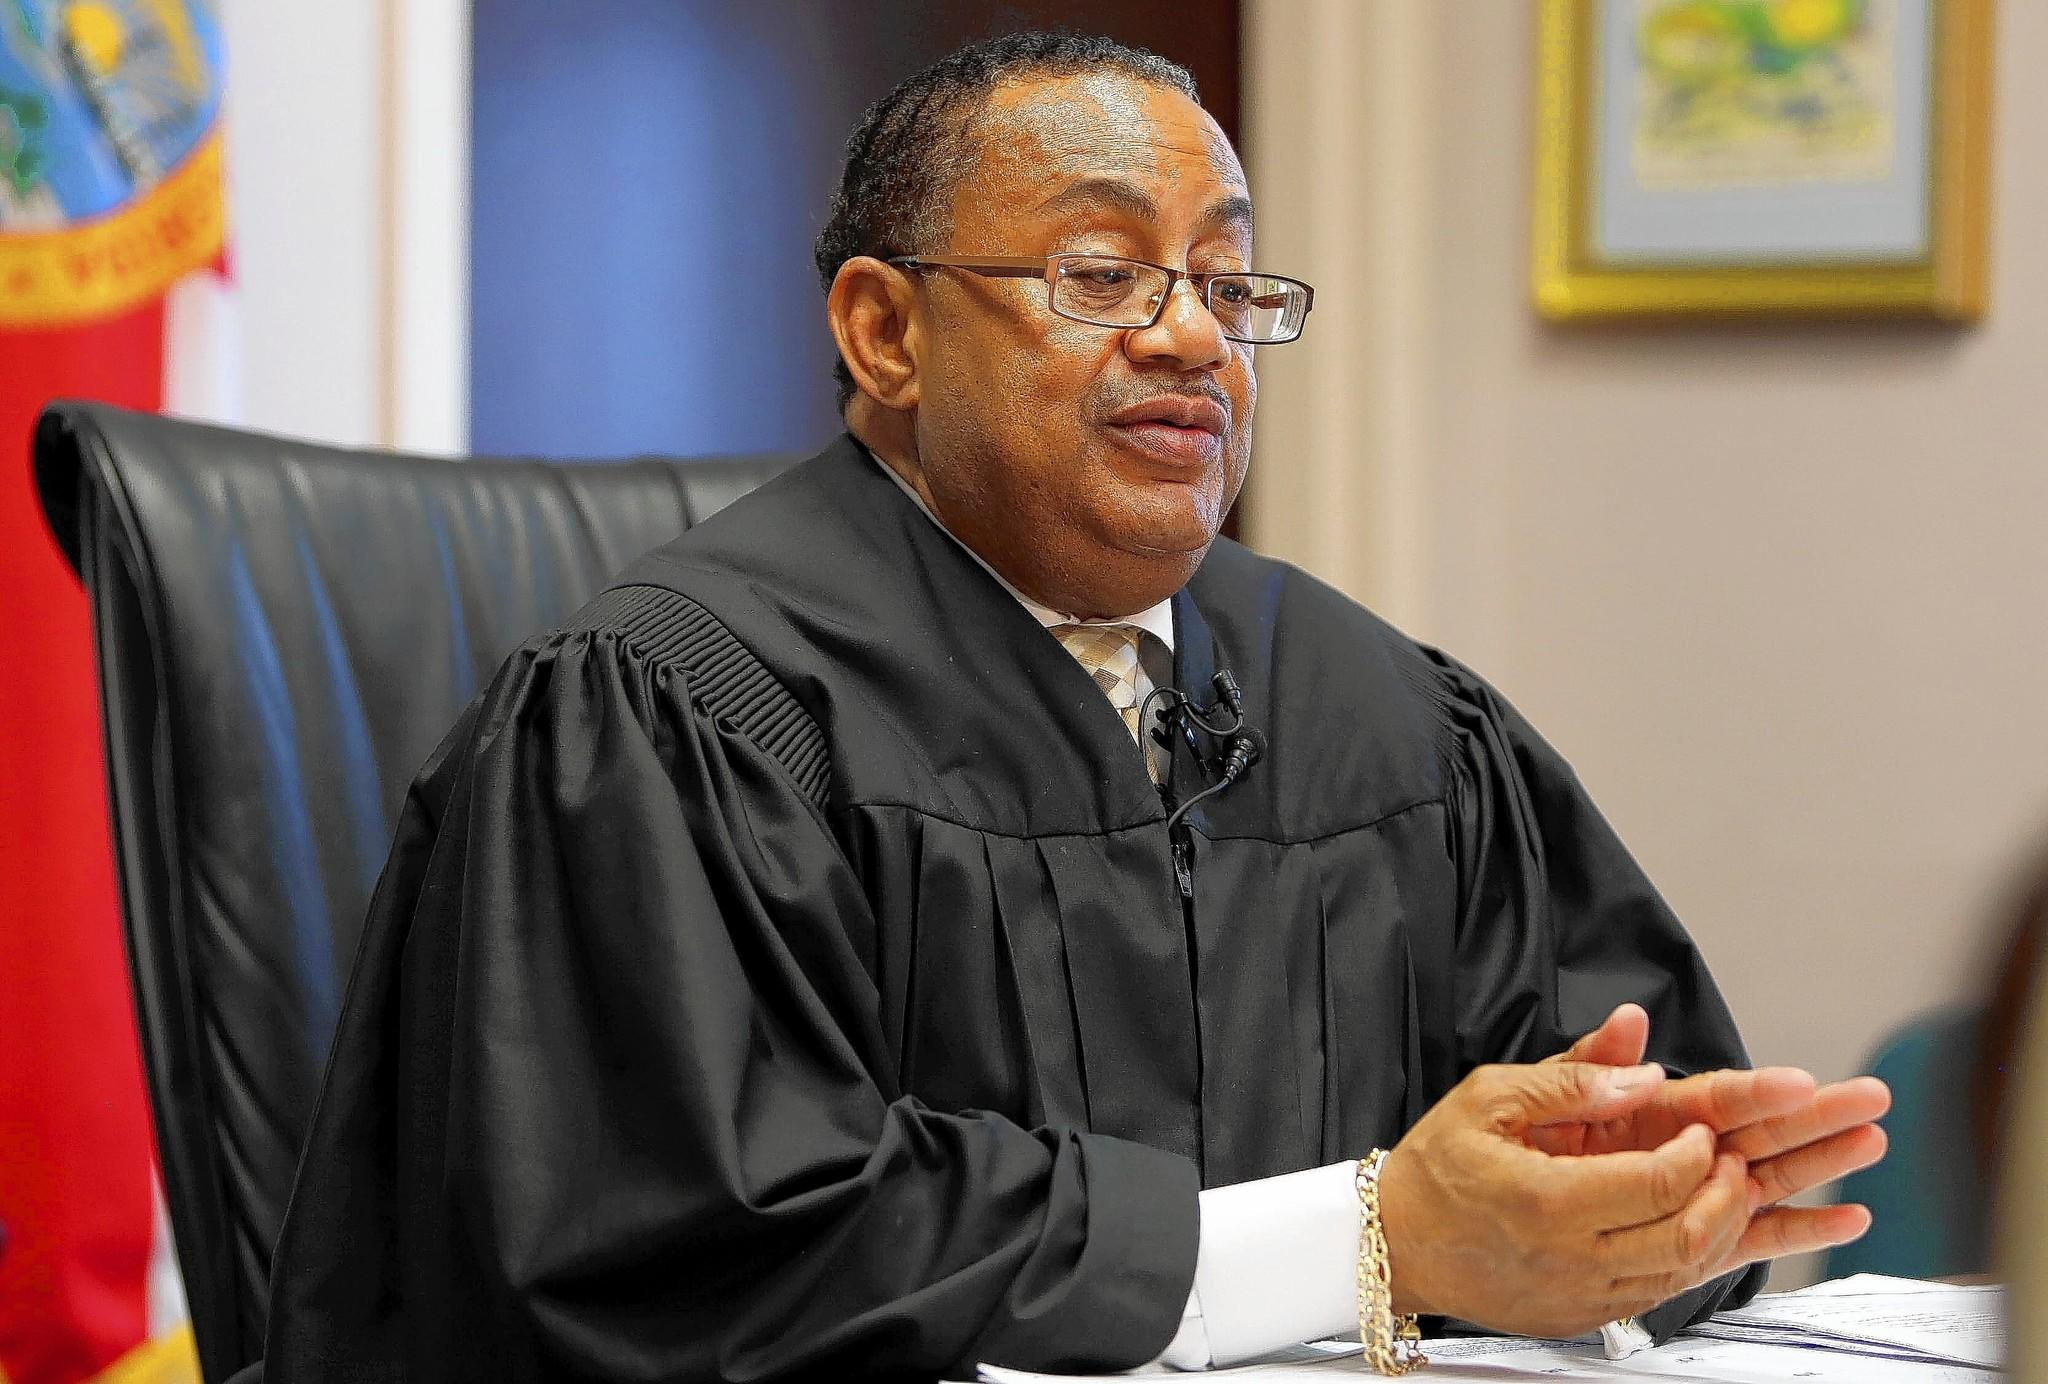 Chief judge Belvin Perry, Jr, talks about forged court orders that led to the erroneous of two convicted murderers , on Thursday, October 17, 2013. Charles Bernard Walker and Joseph Jenkins, both 34, used forged documents to secure their release from the Franklin Correctional Institution in the Panhandle.